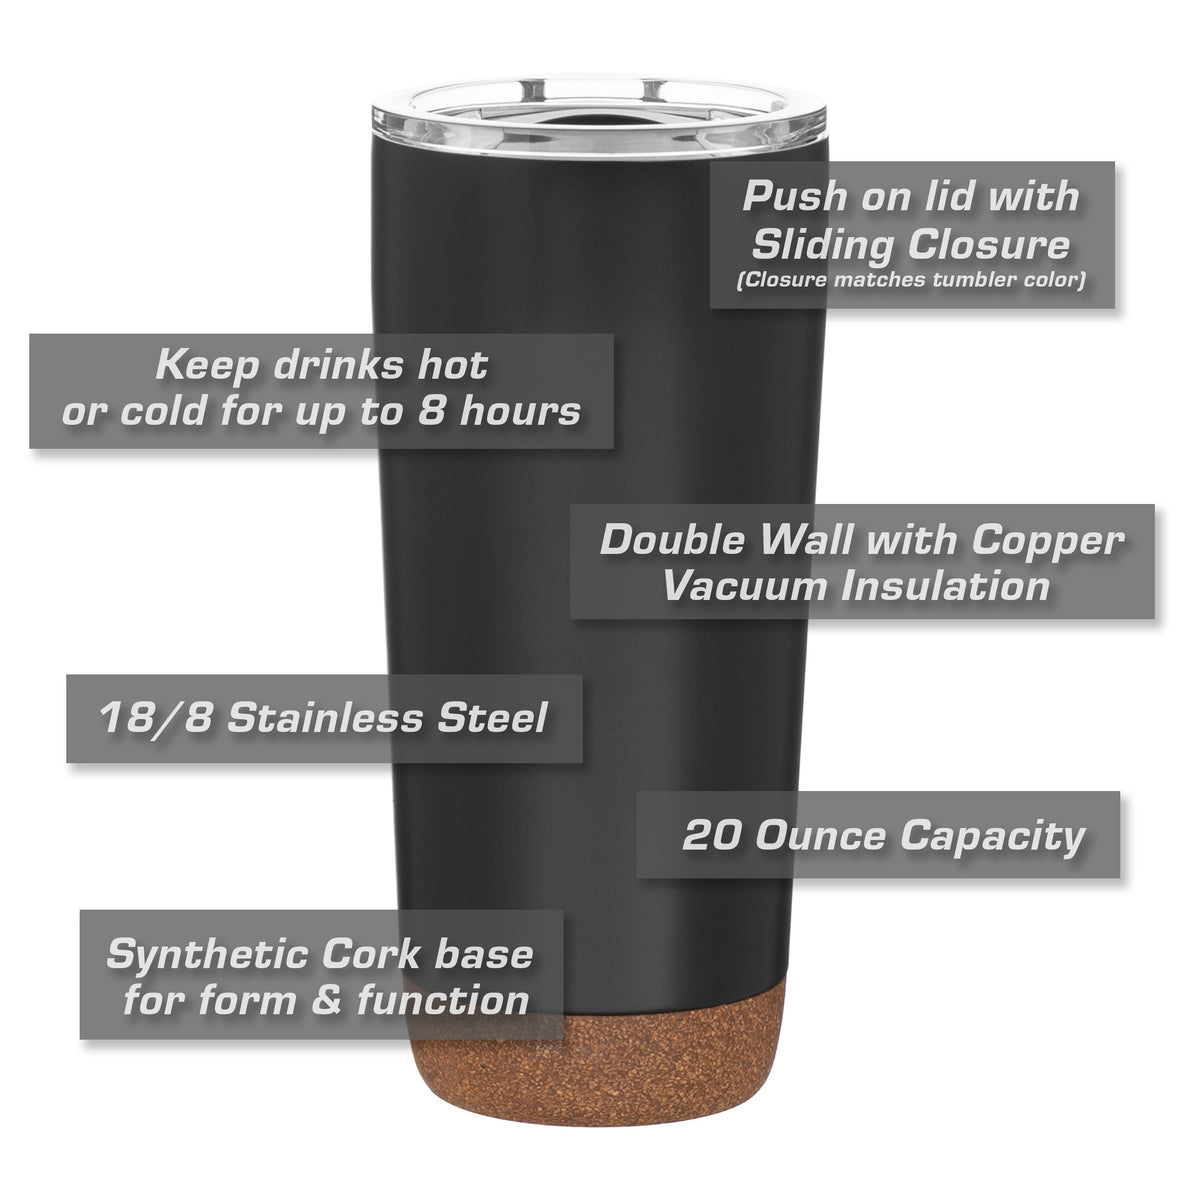 Land Rover Range Rover 2021 Insulated Stainless Steel Coffee Tumbler - 20 oz